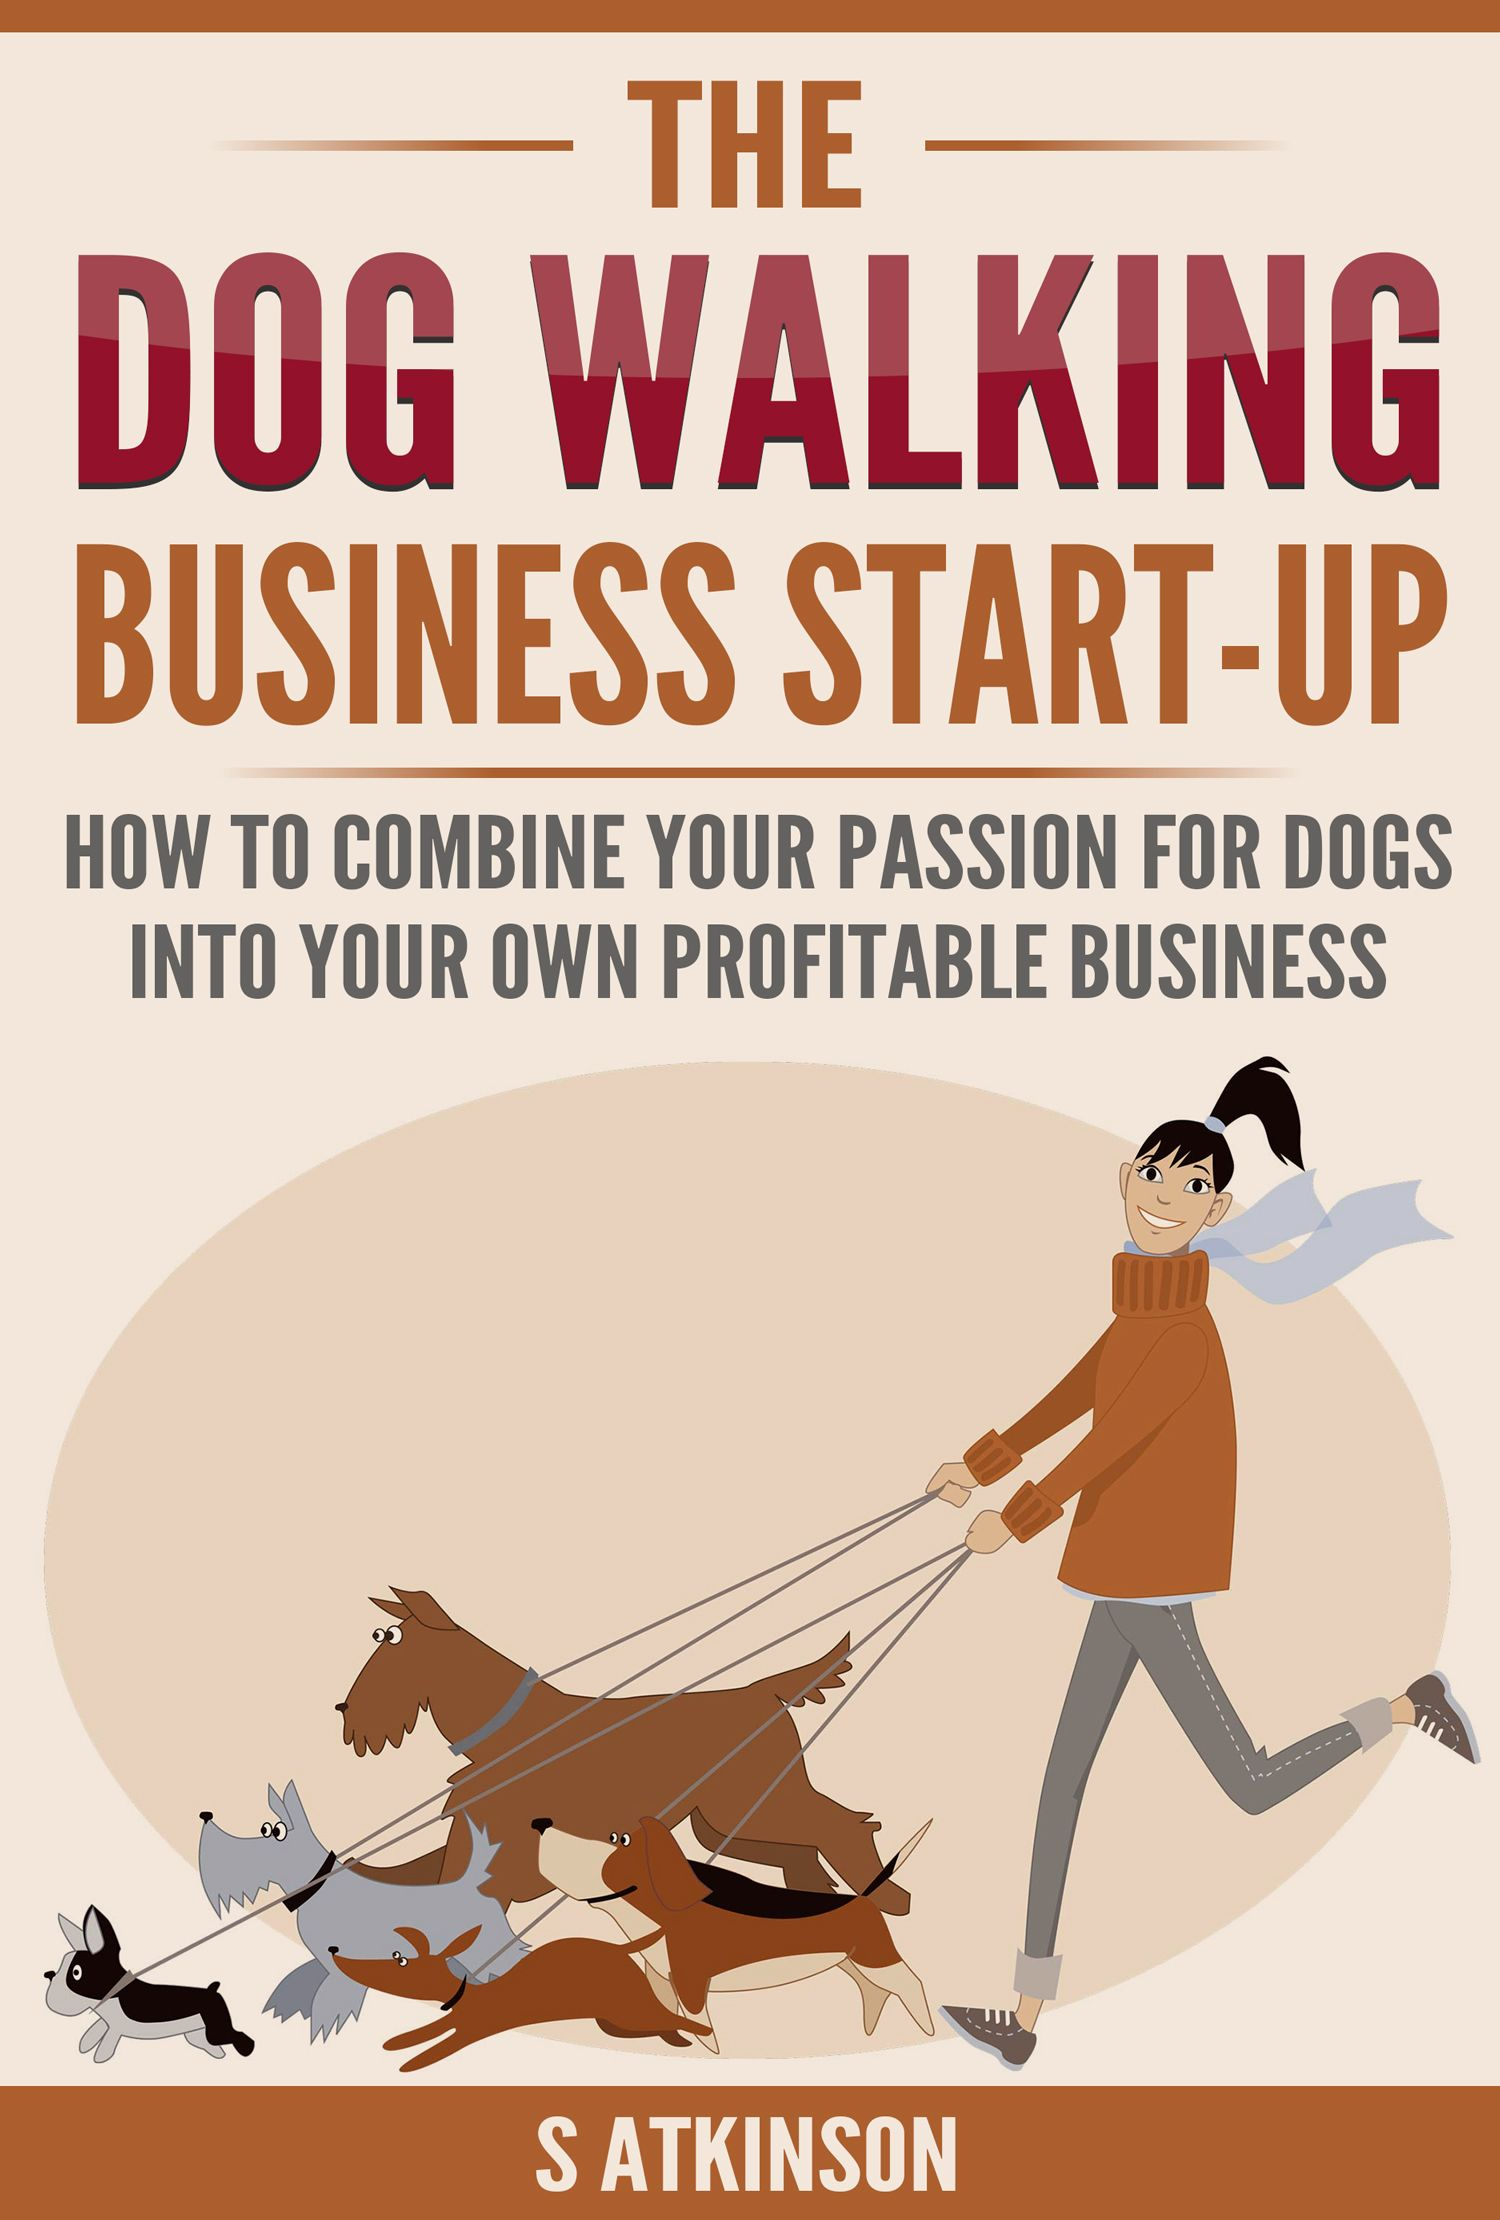 Great New Book On Starting A Dog Walking Business At Amazon Http Www Amazon Co Uk Dog Walking Business Dog Walking Business Dog Business Dog Walking Flyer